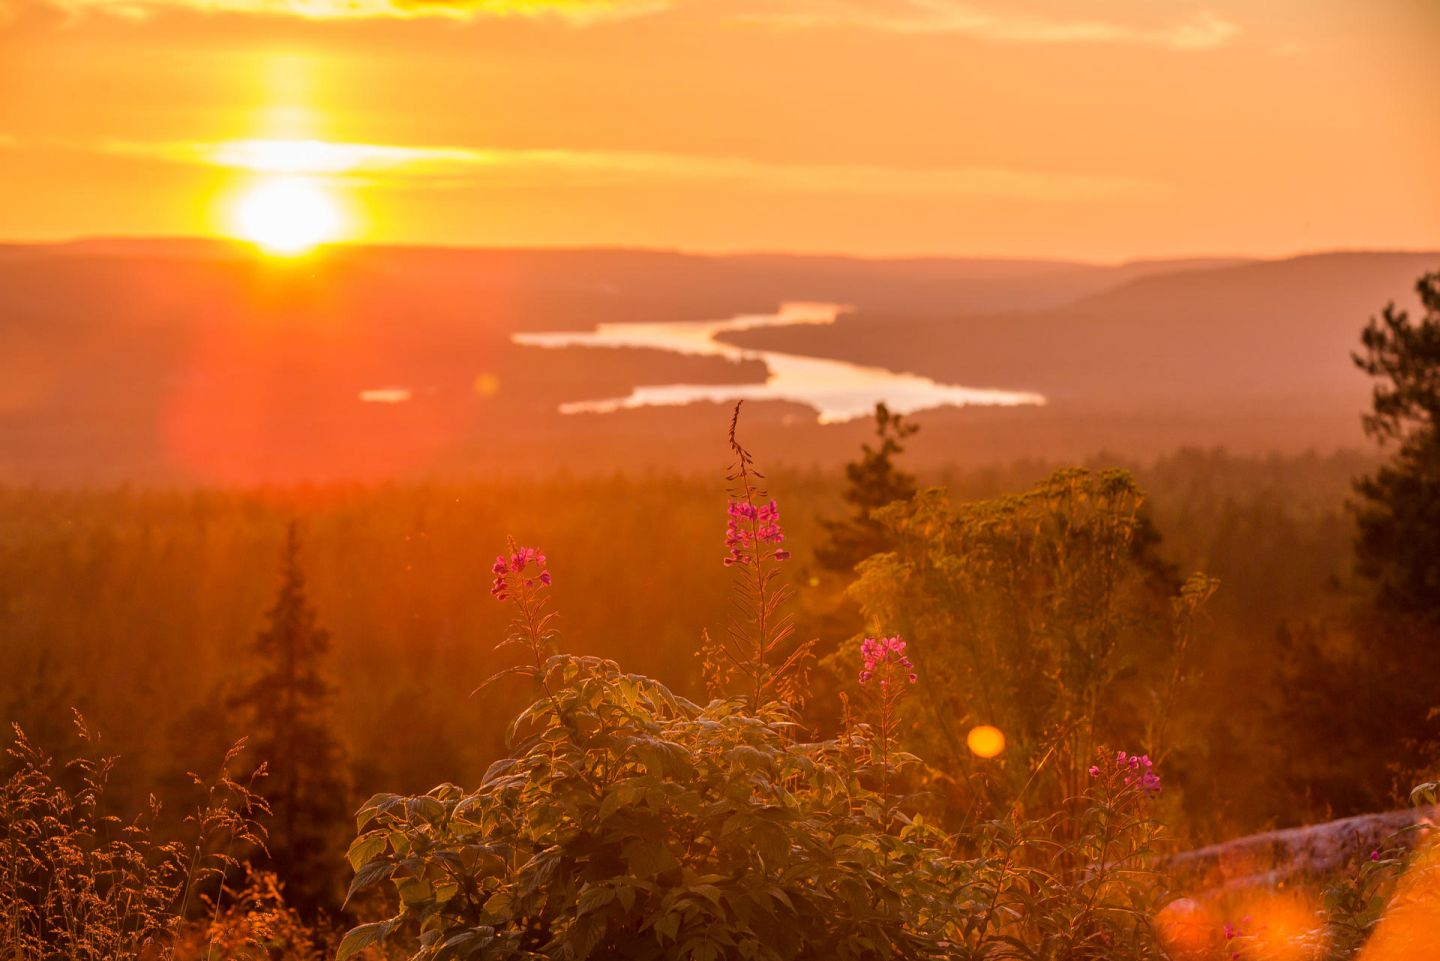 The view from Kuninkaan Laavu in Rovaniemi, Lapland in autumn